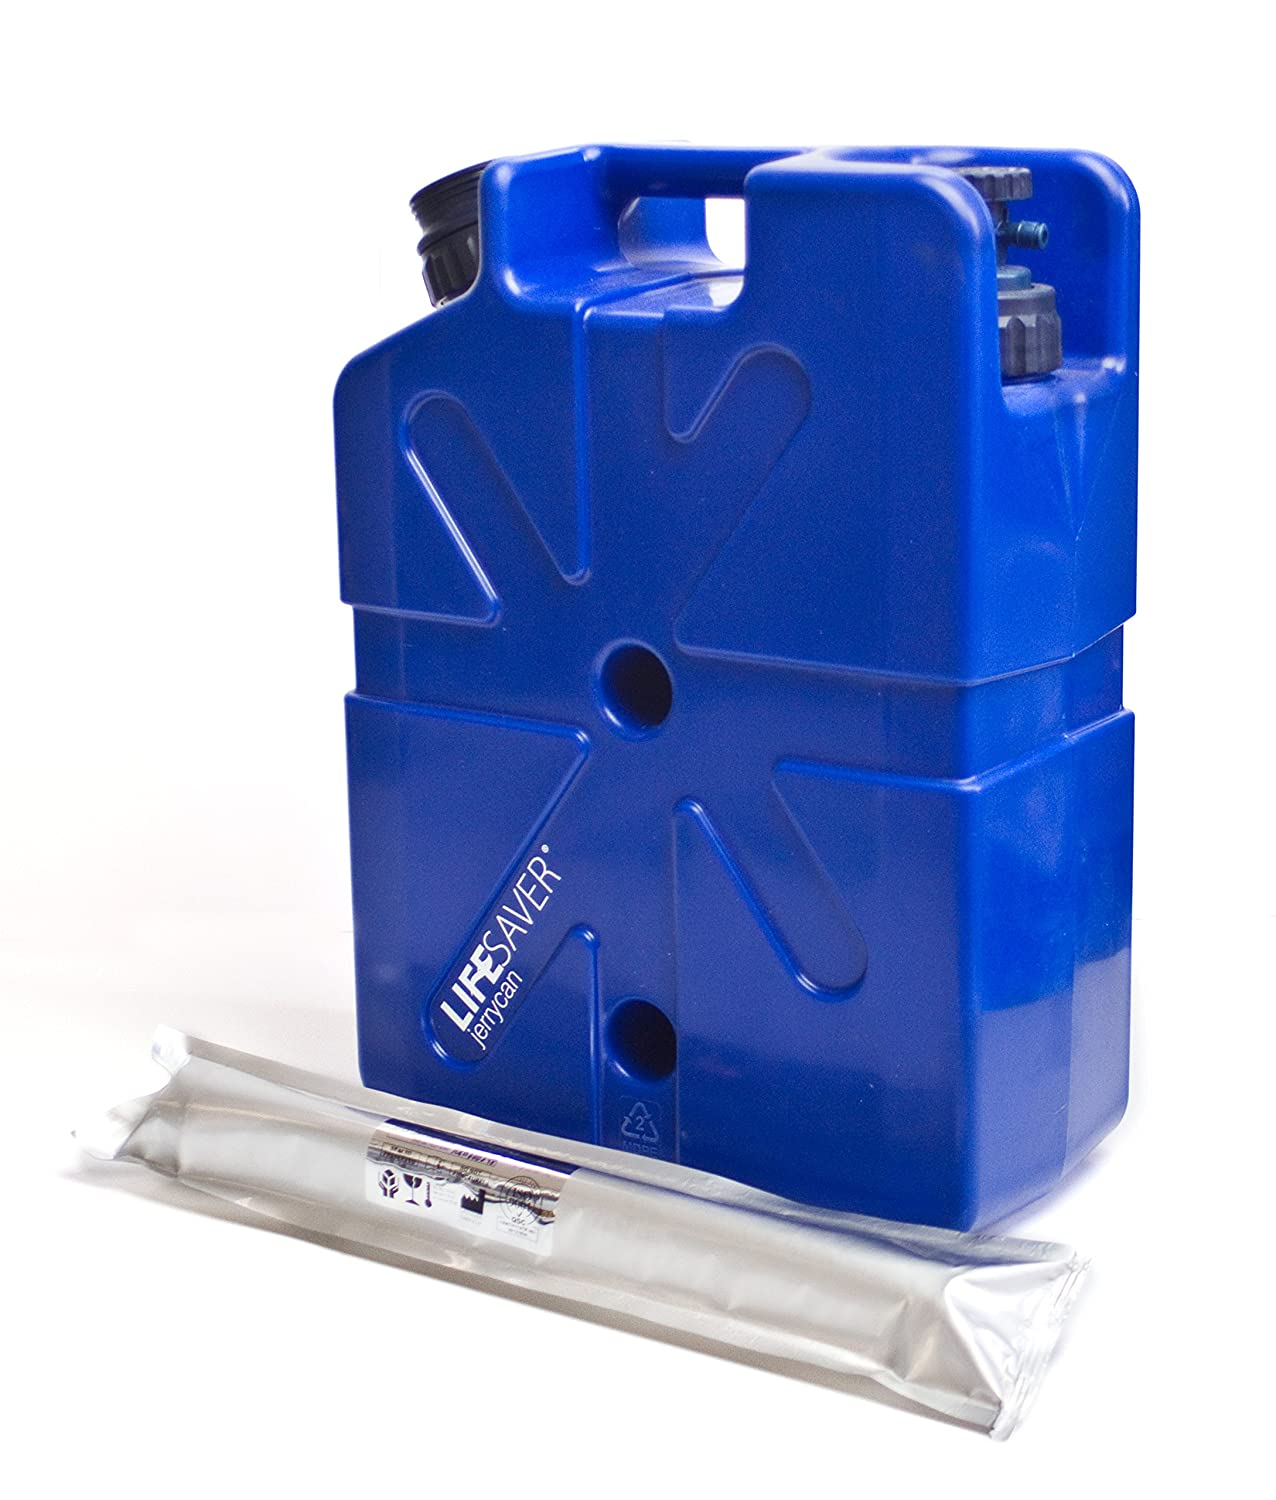 LIFESAVER jerrycan 20000UF Now and Then Kit by Lifesaver